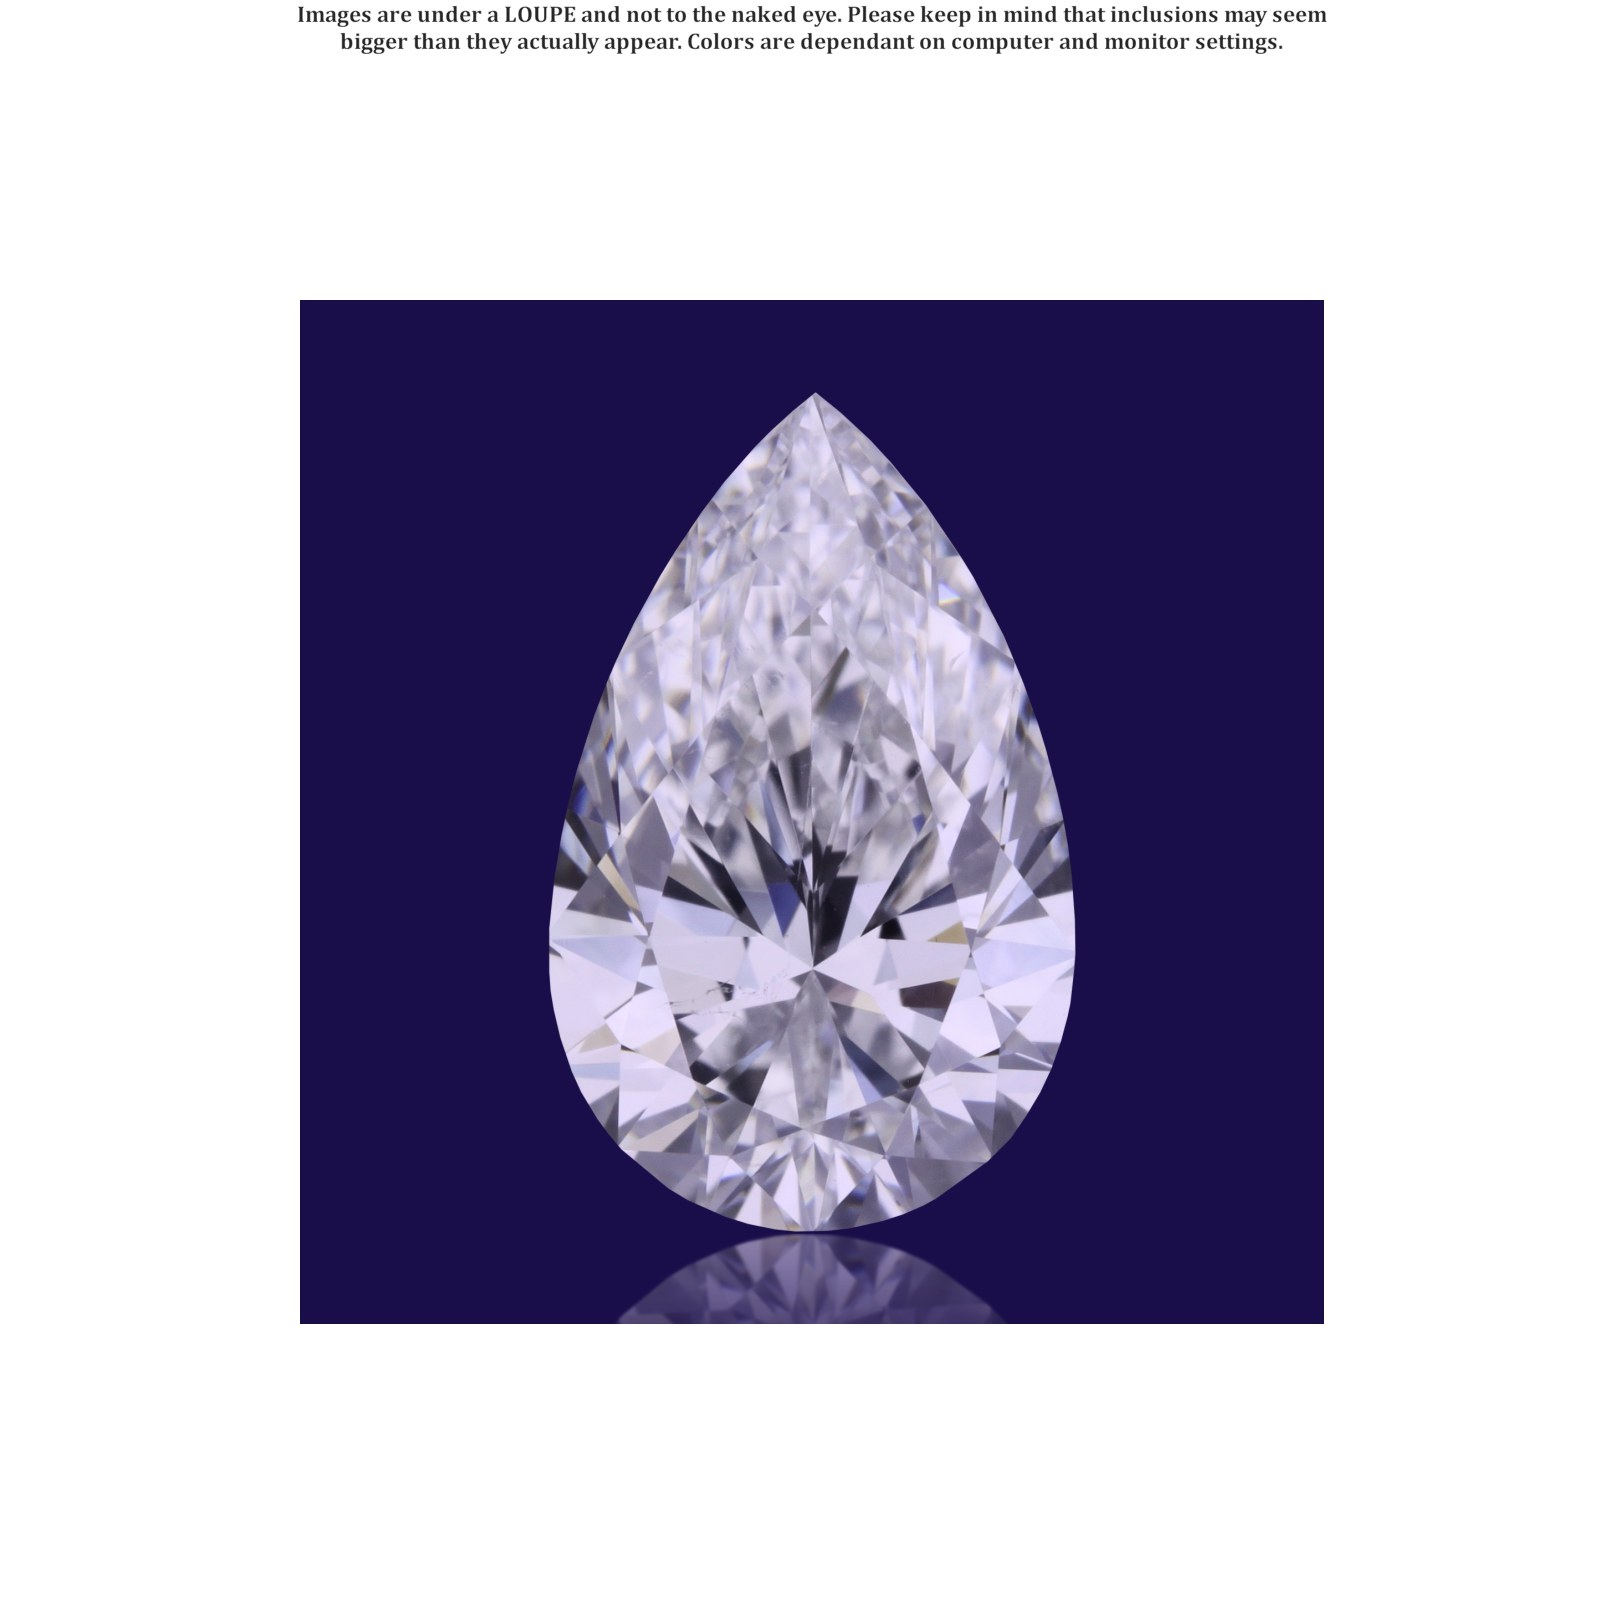 Thurber Jewelers - Diamond Image - .00707